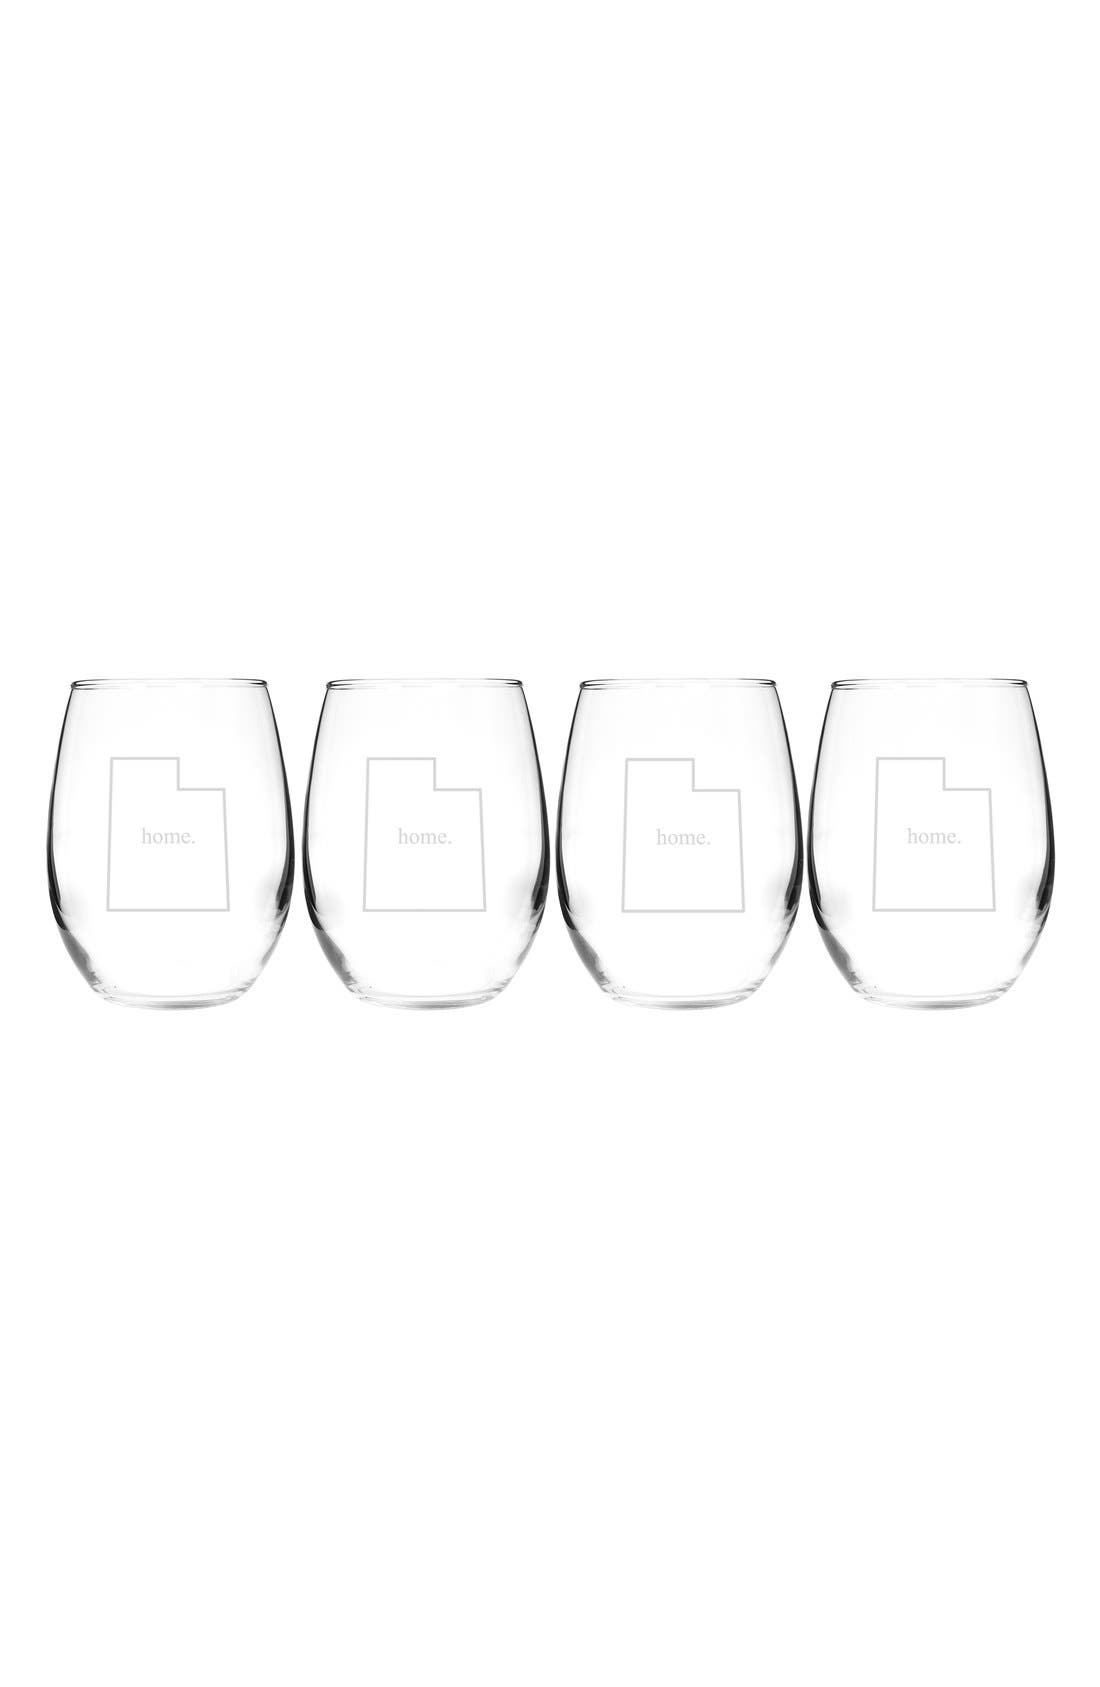 CATHY'S CONCEPTS Home State Set of 4 Stemless